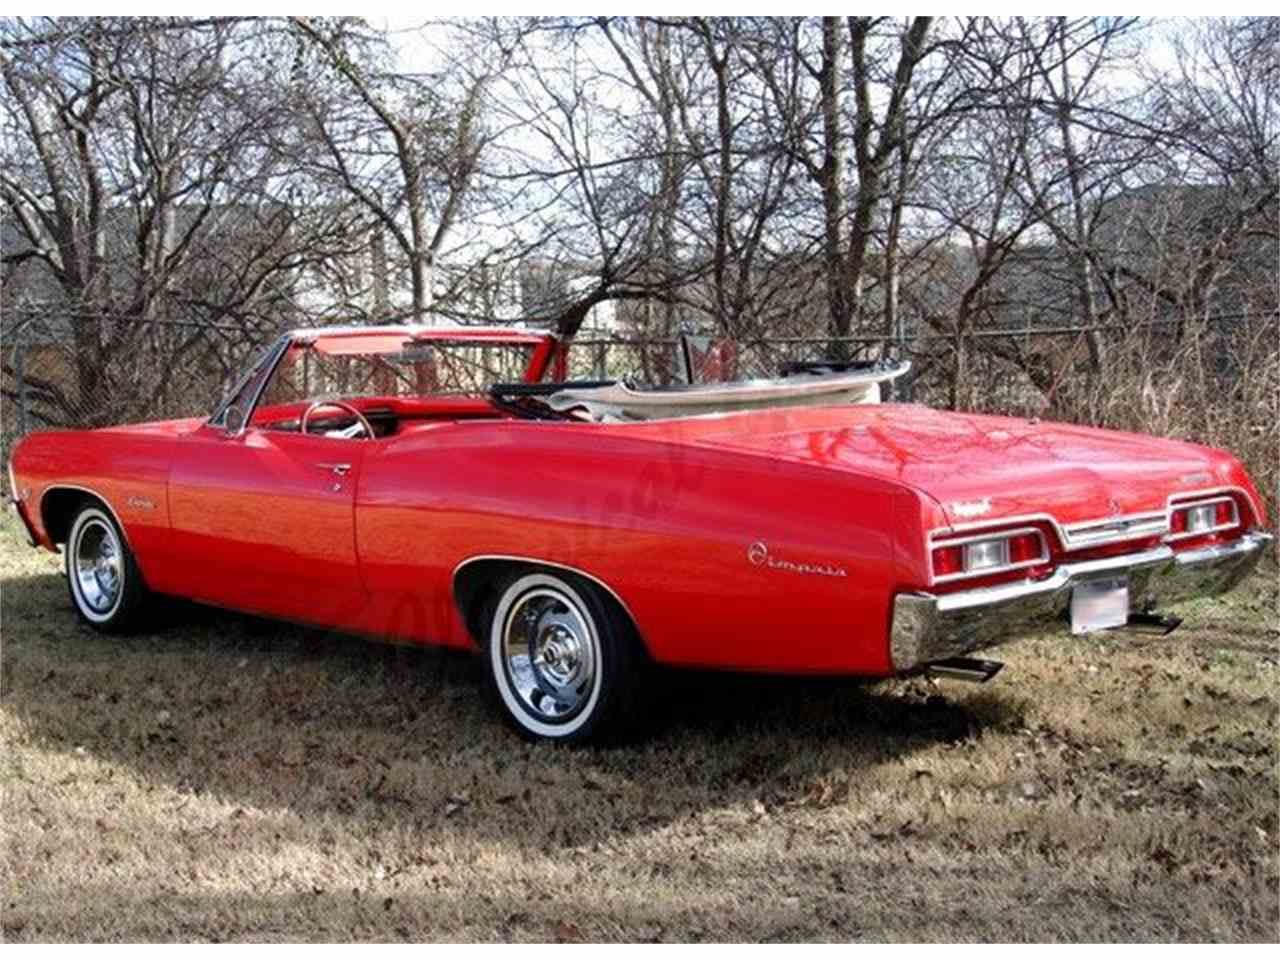 Convertible 1967 chevy impala convertible for sale : 1967 Chevrolet Impala SS for Sale   ClassicCars.com   CC-434710